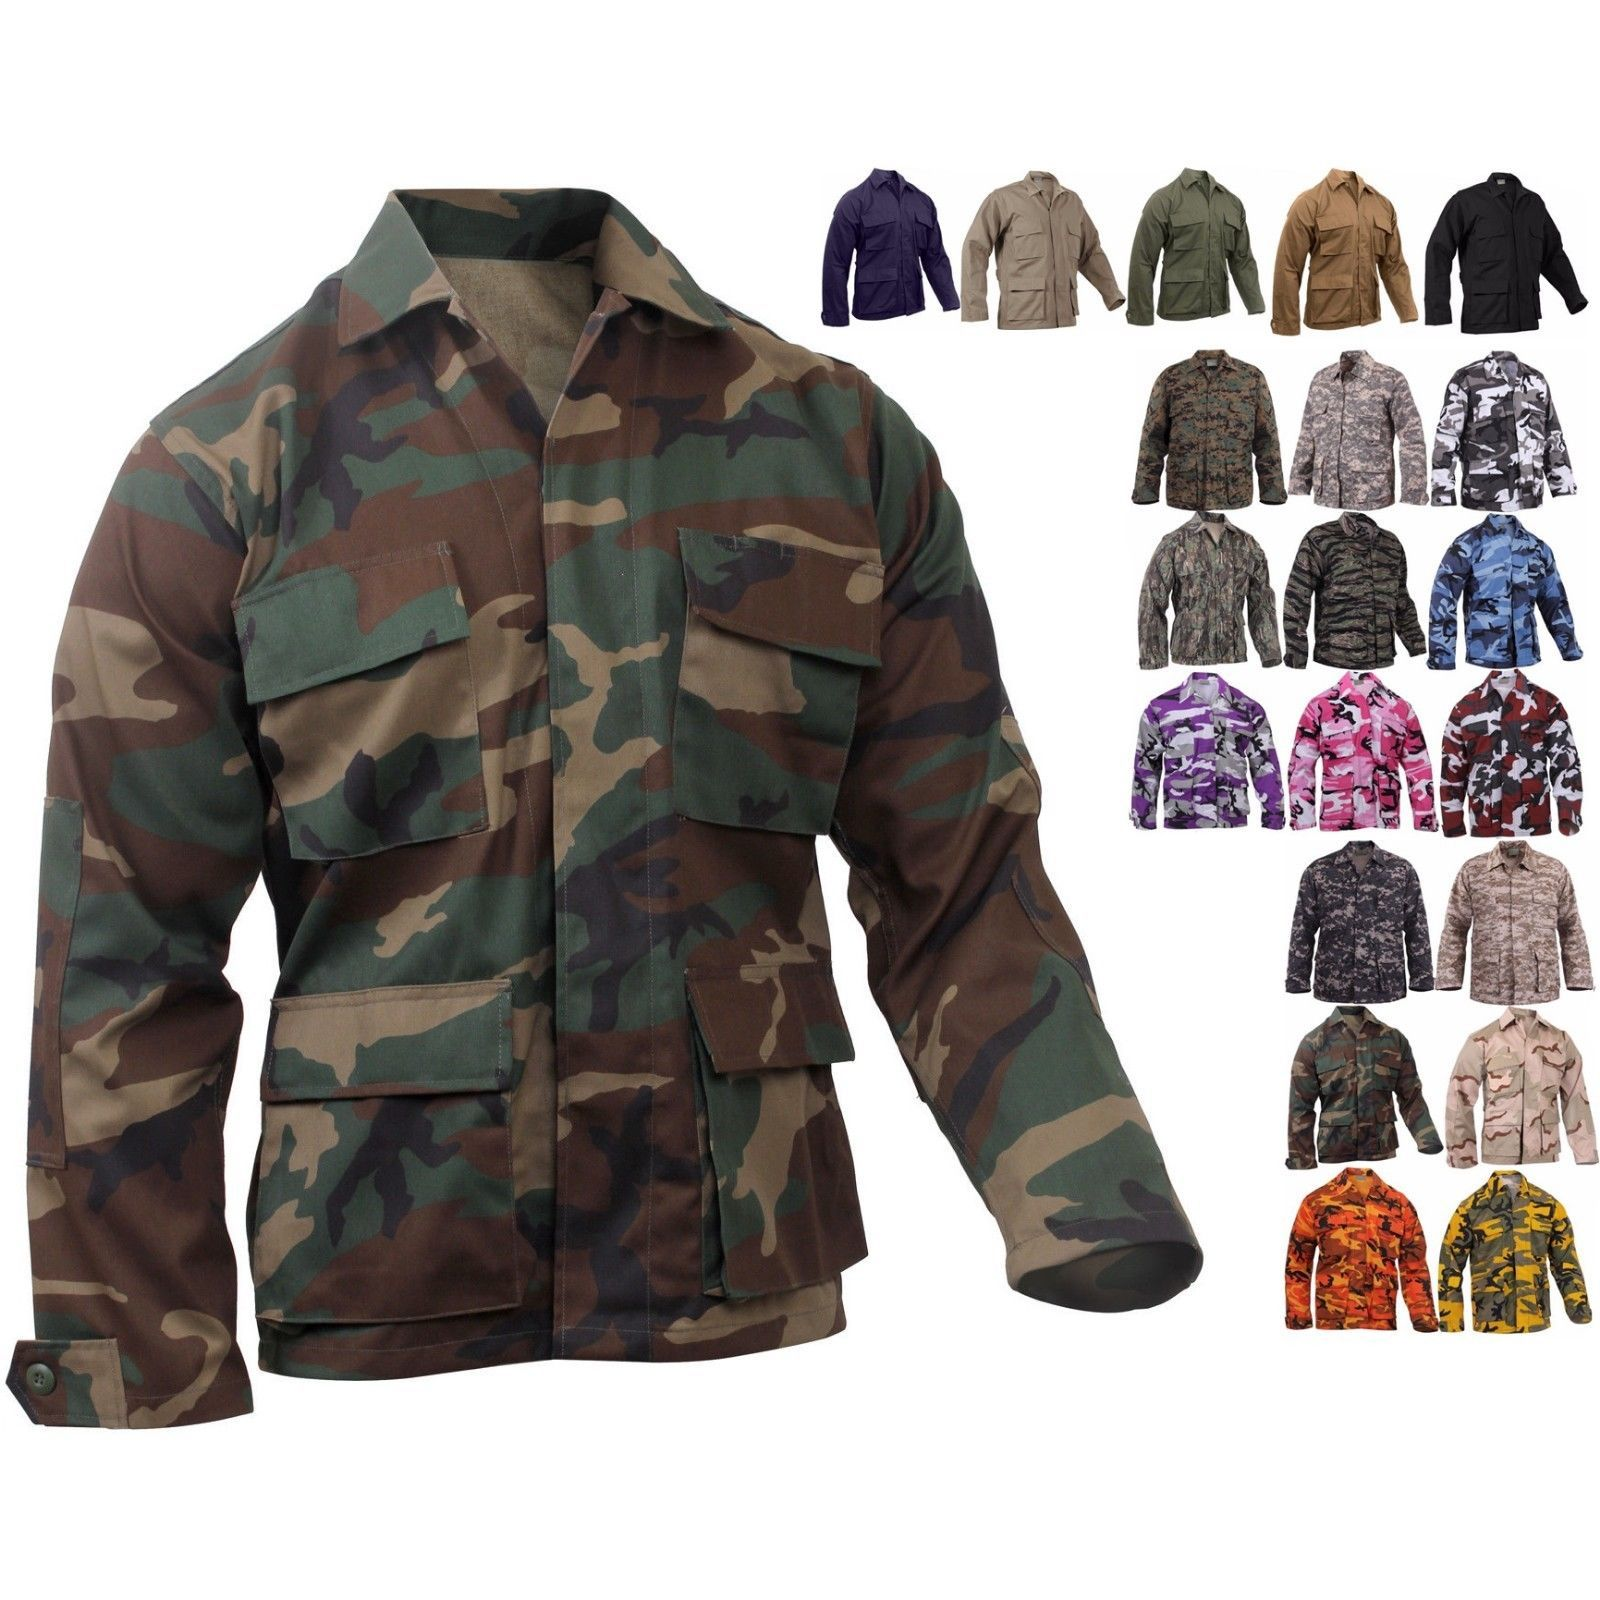 Military BDU Shirt Tactical Uniform Army Coat Camouflage Army Fatigue Jacket f72a23008